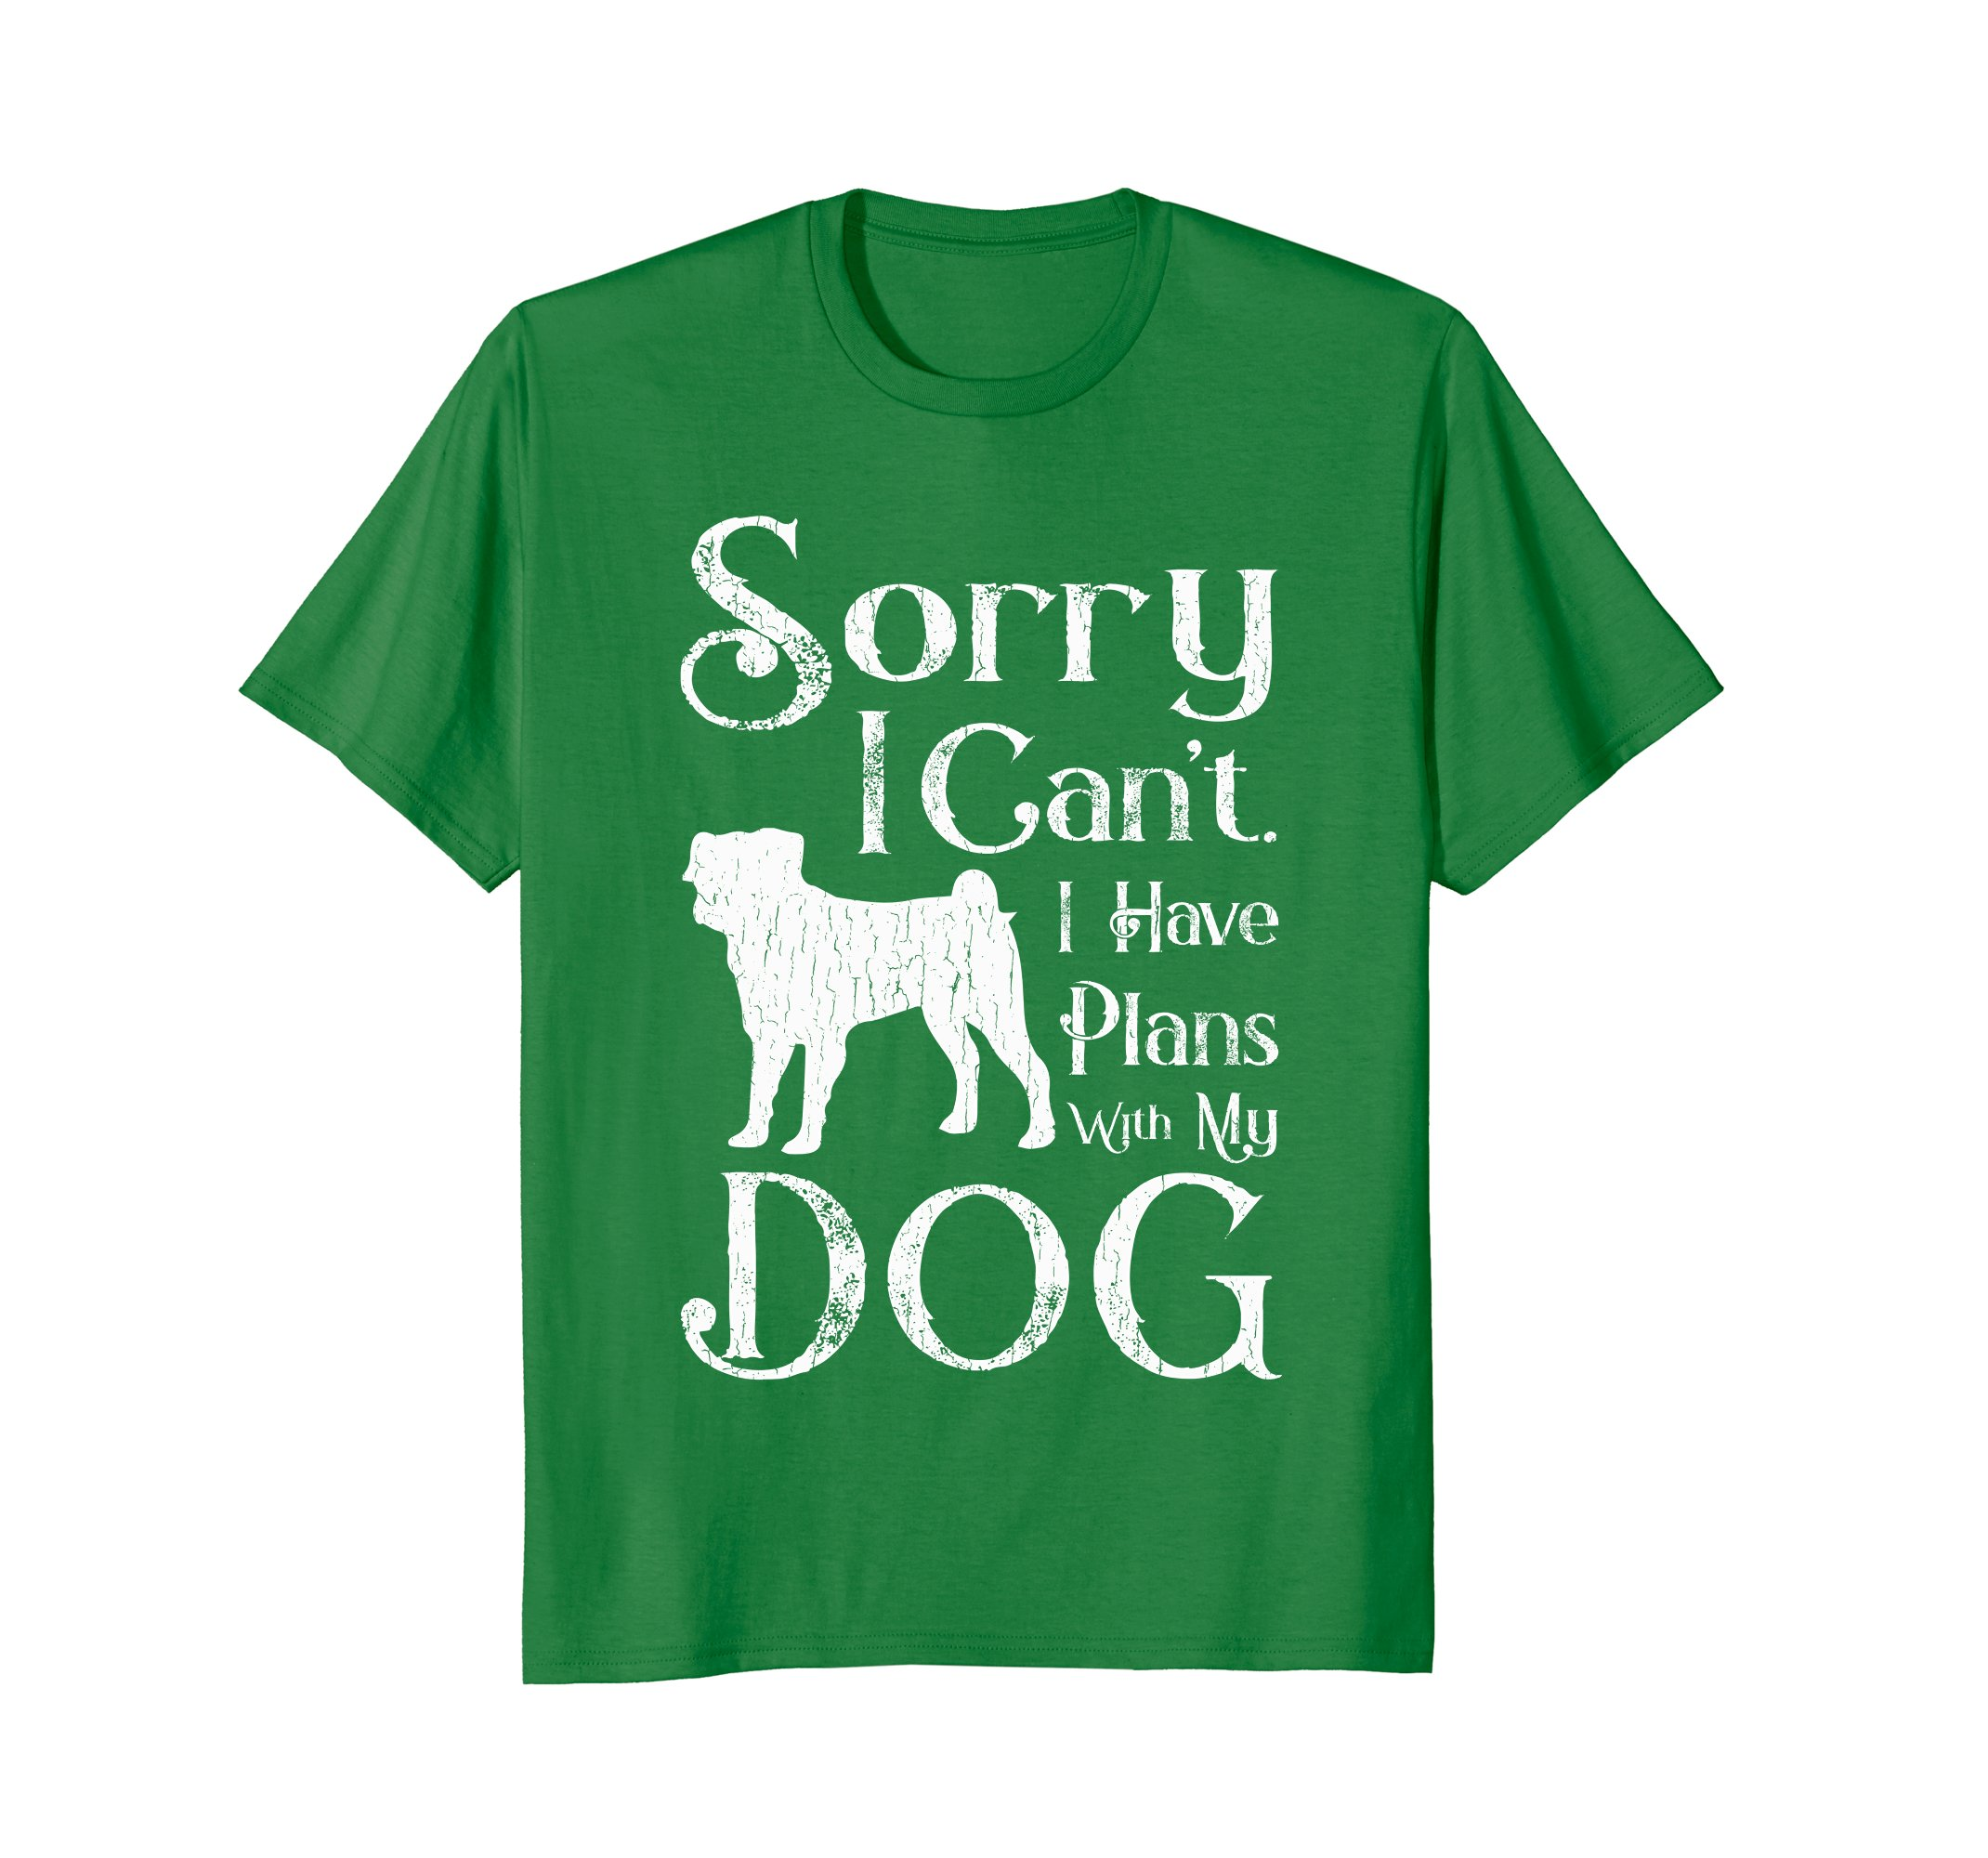 T shirt for dogs kamos t shirt for Dog t shirt for after surgery